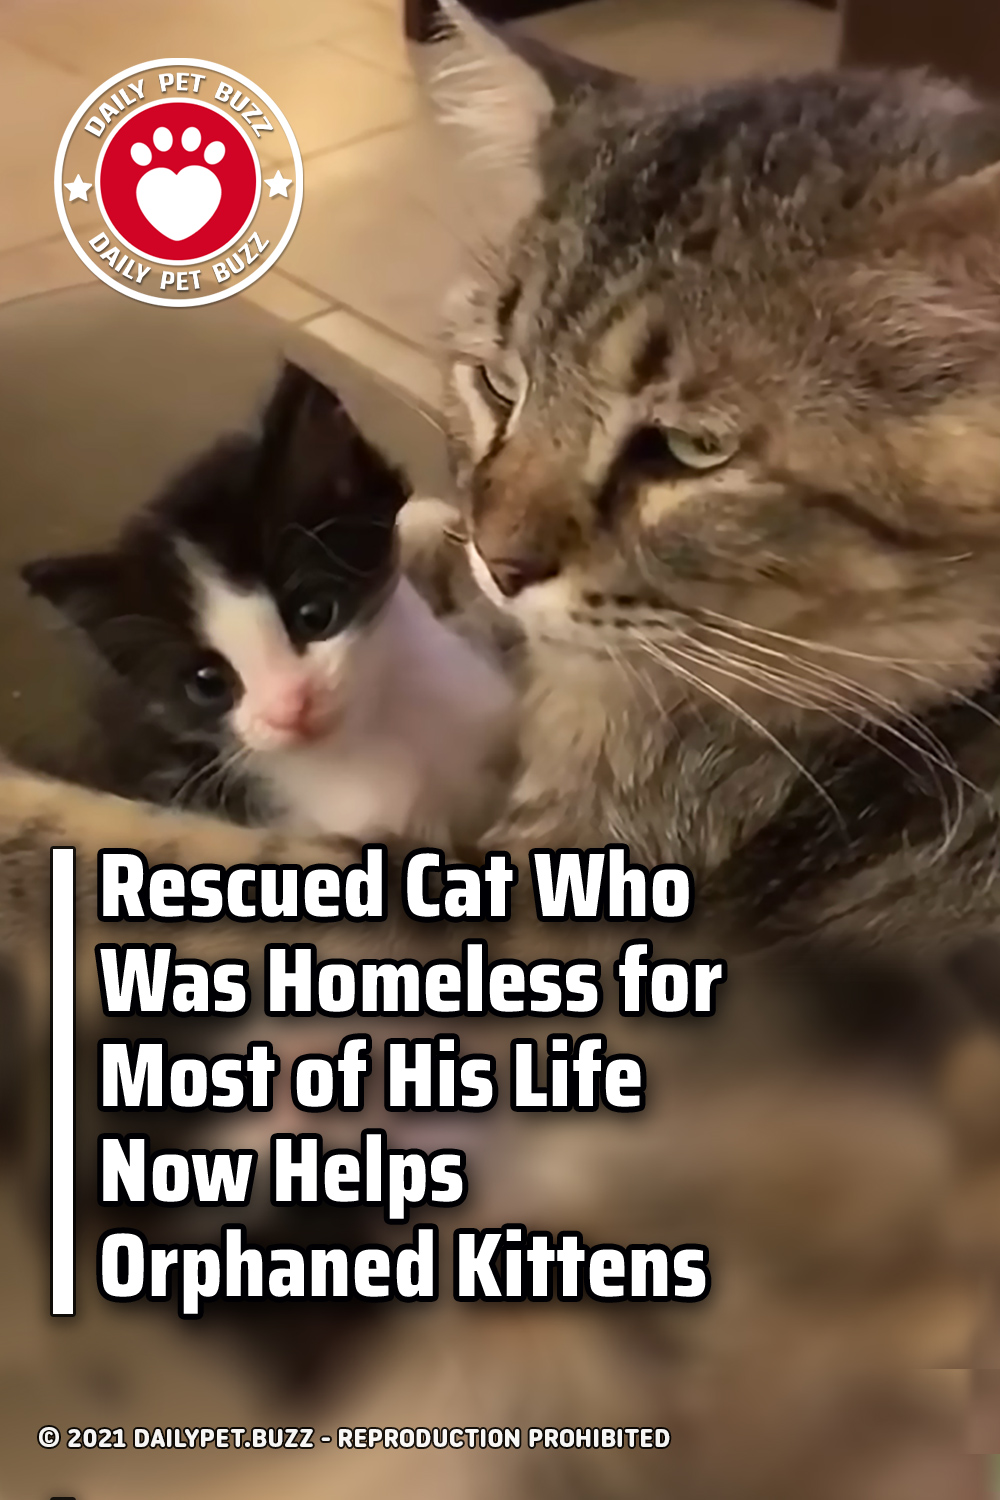 Rescued Cat Who Was Homeless for Most of His Life Now Helps Orphaned Kittens